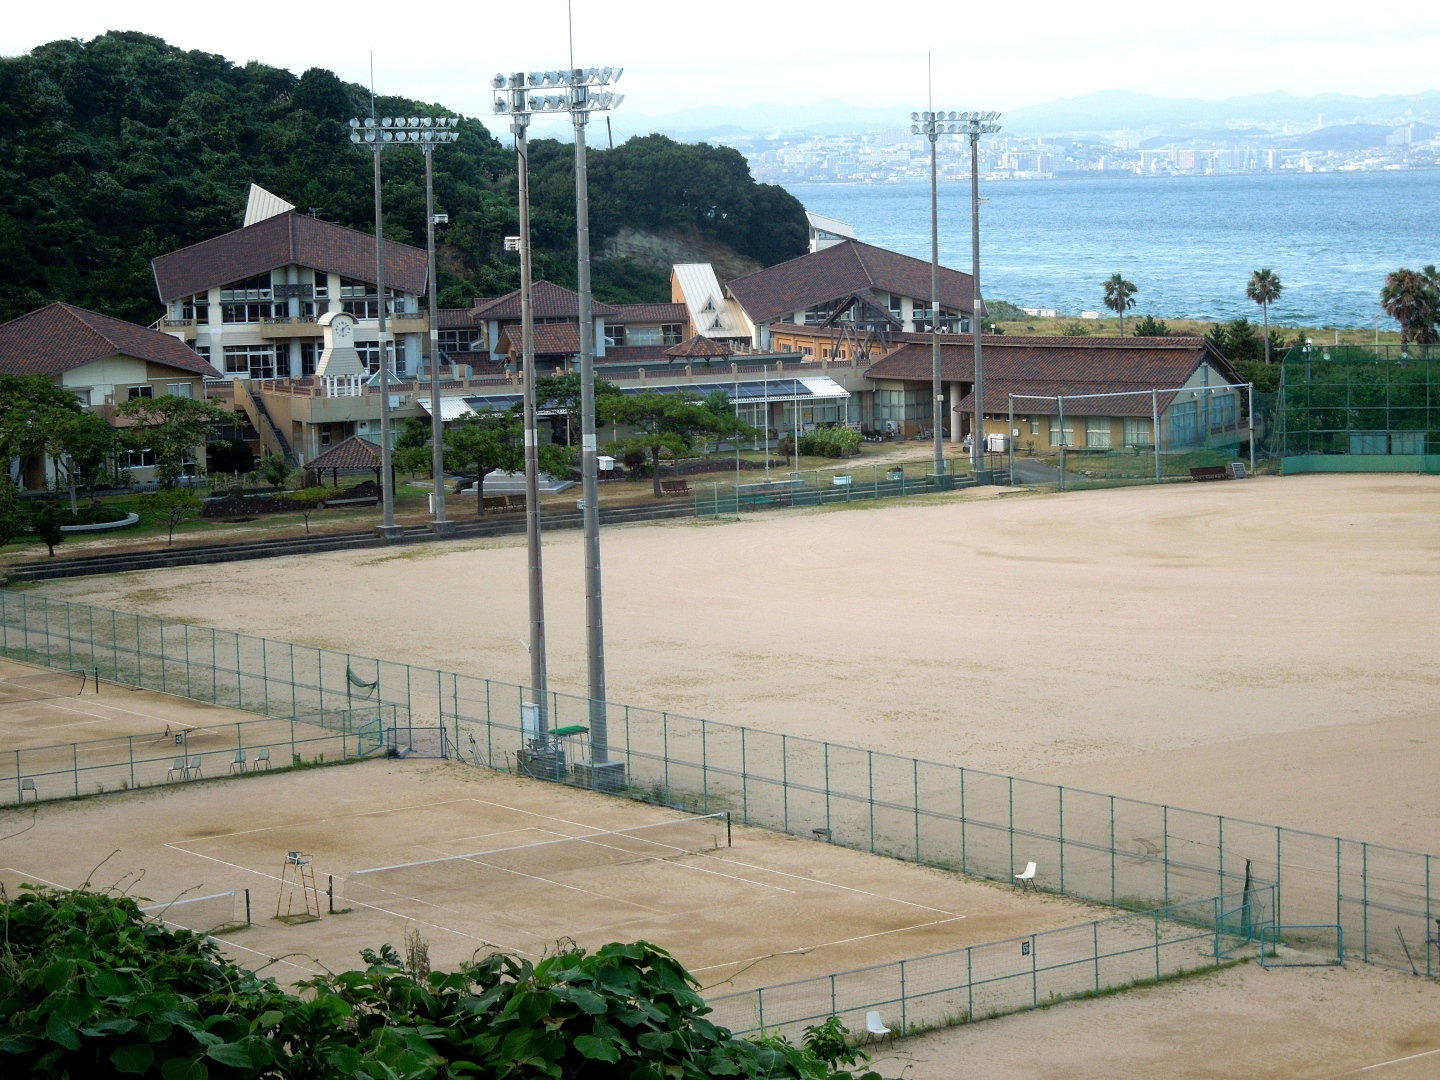 This is Iwaya JHS, one of the two middle schools I teach at. It is only a 3 minute walk from my apartment. You can see Kobe across the water in the background.